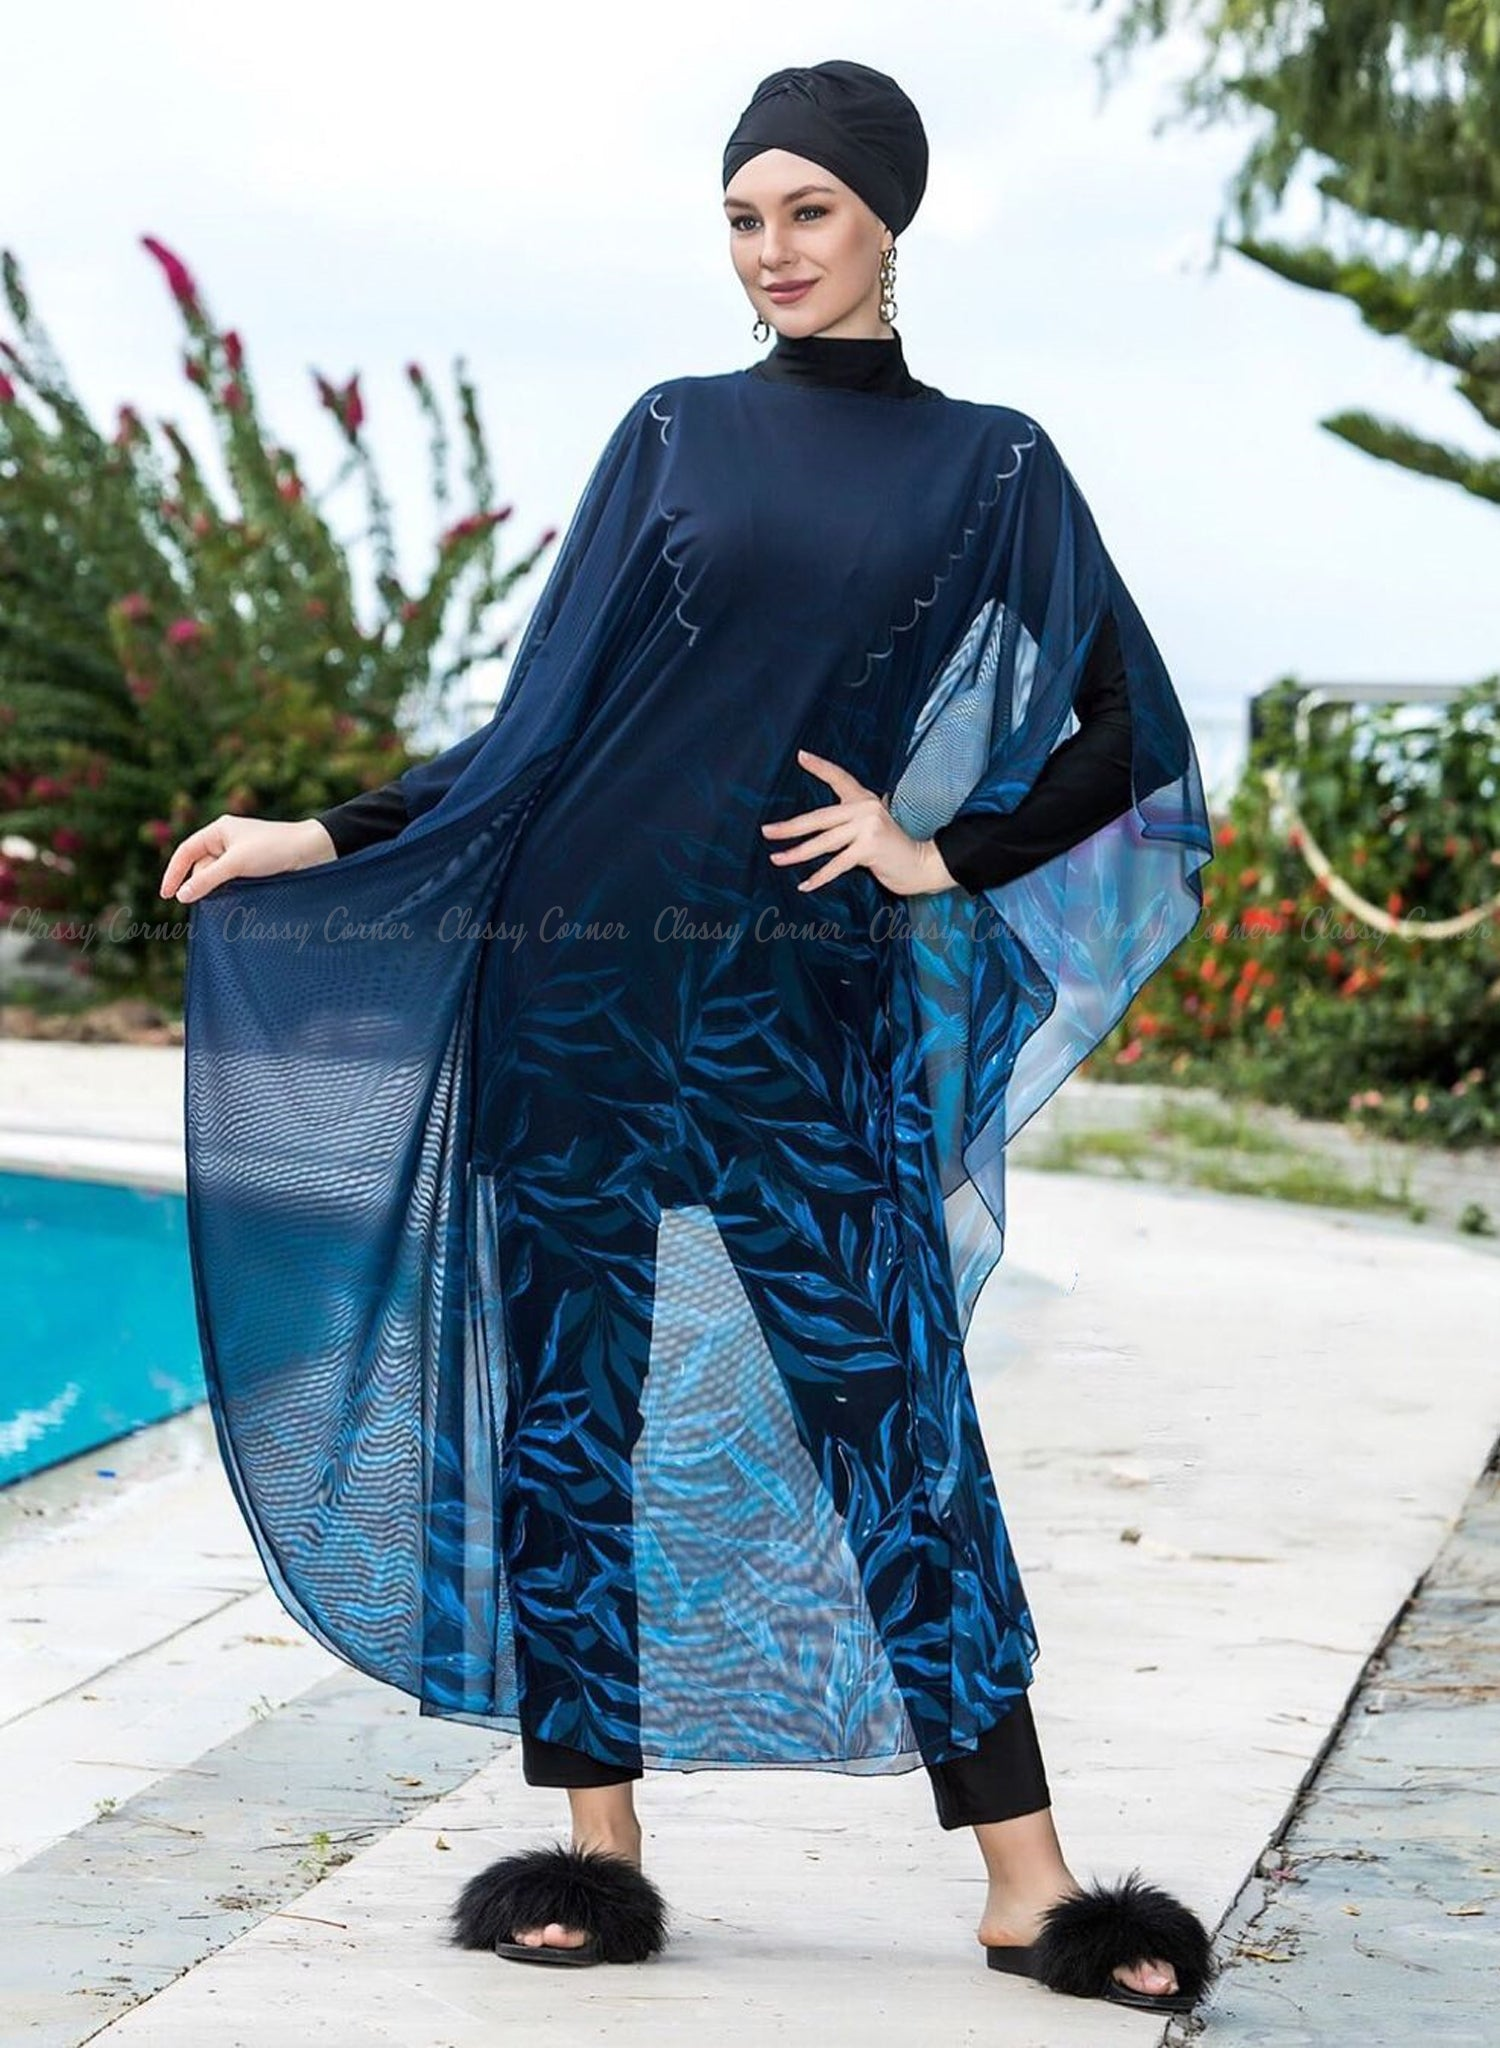 Shades of Blue Leafy Print Navy Blue Swim Wear Cover Up